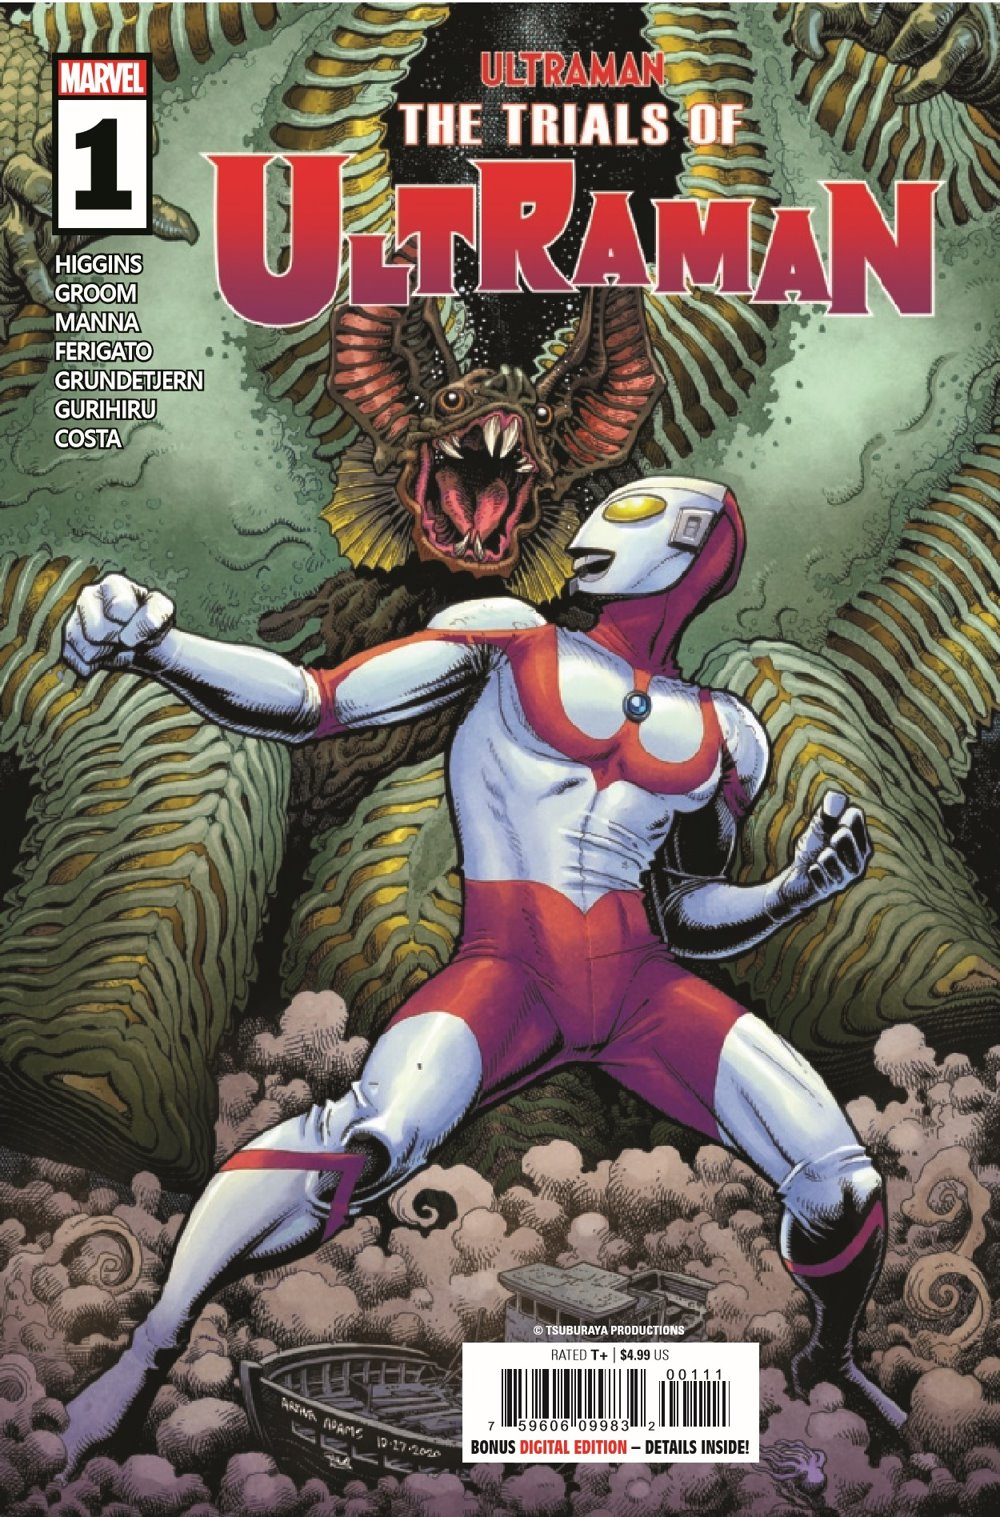 ULTRAMANTRIALS2021001_Preview-1 ComicList Previews: THE TRIALS OF ULTRAMAN #1 (OF 5)